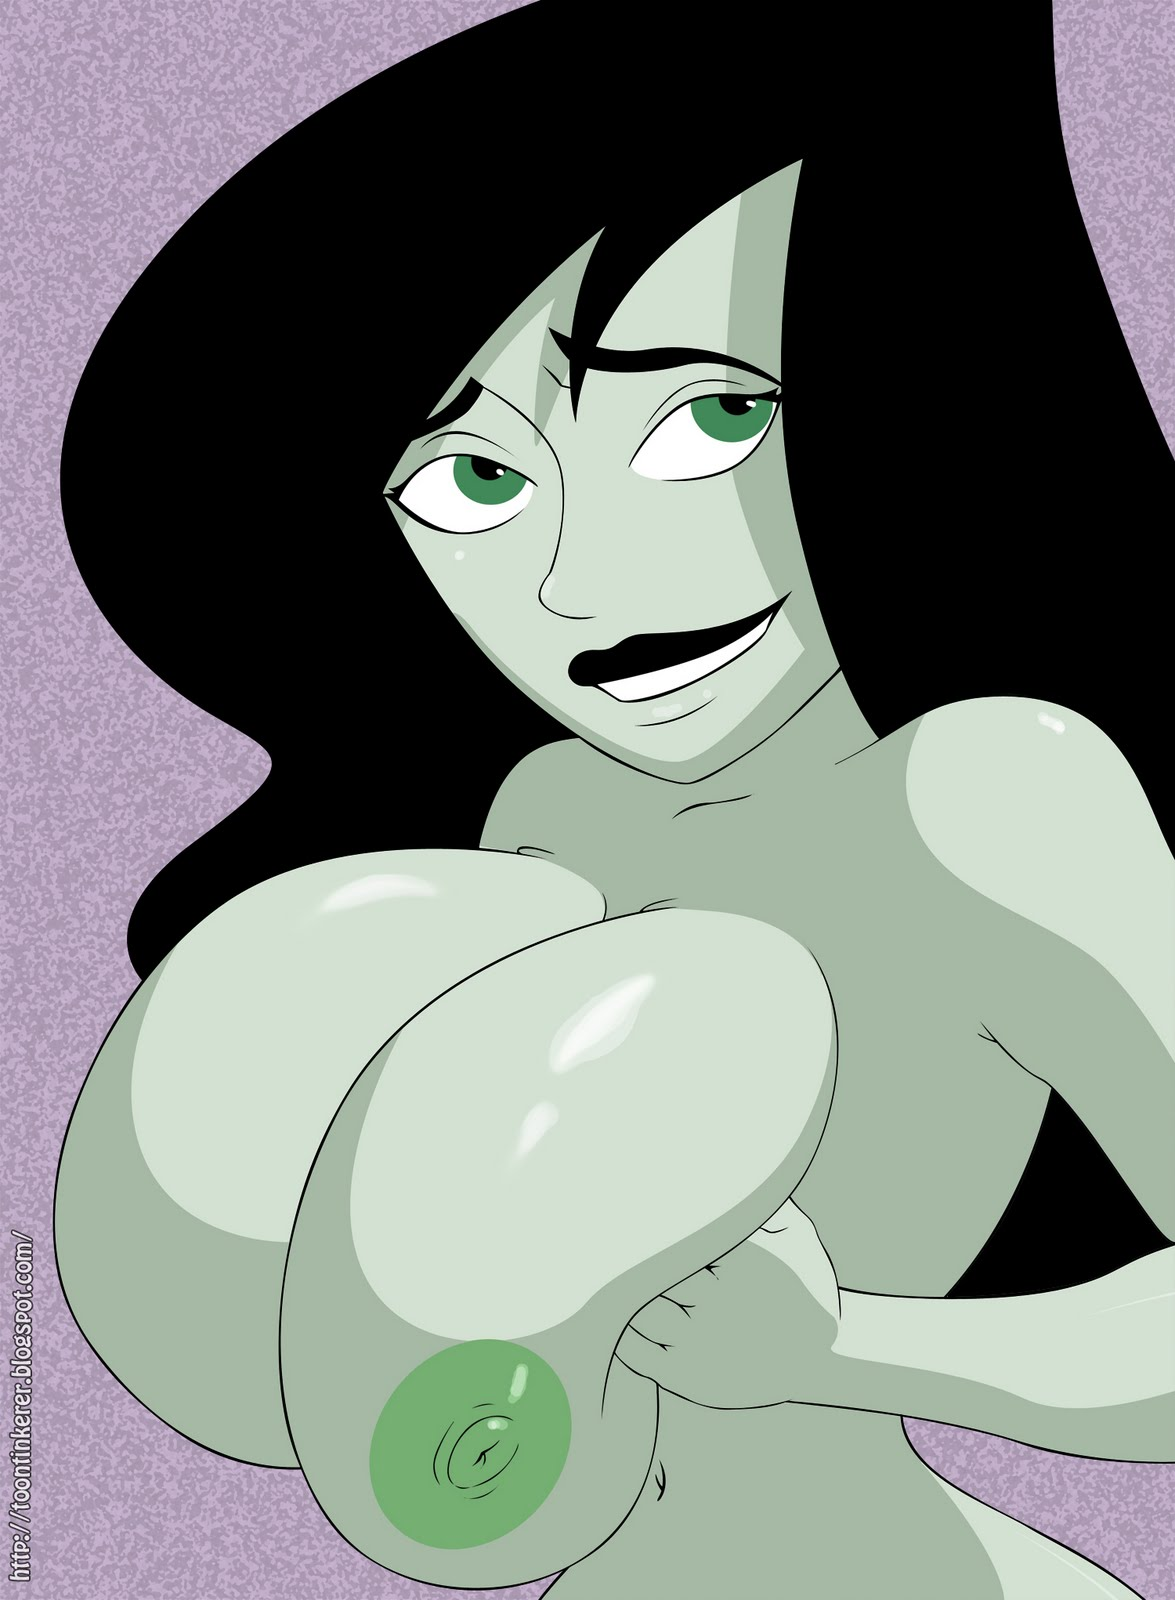 Remarkable, very kim possible shego tits